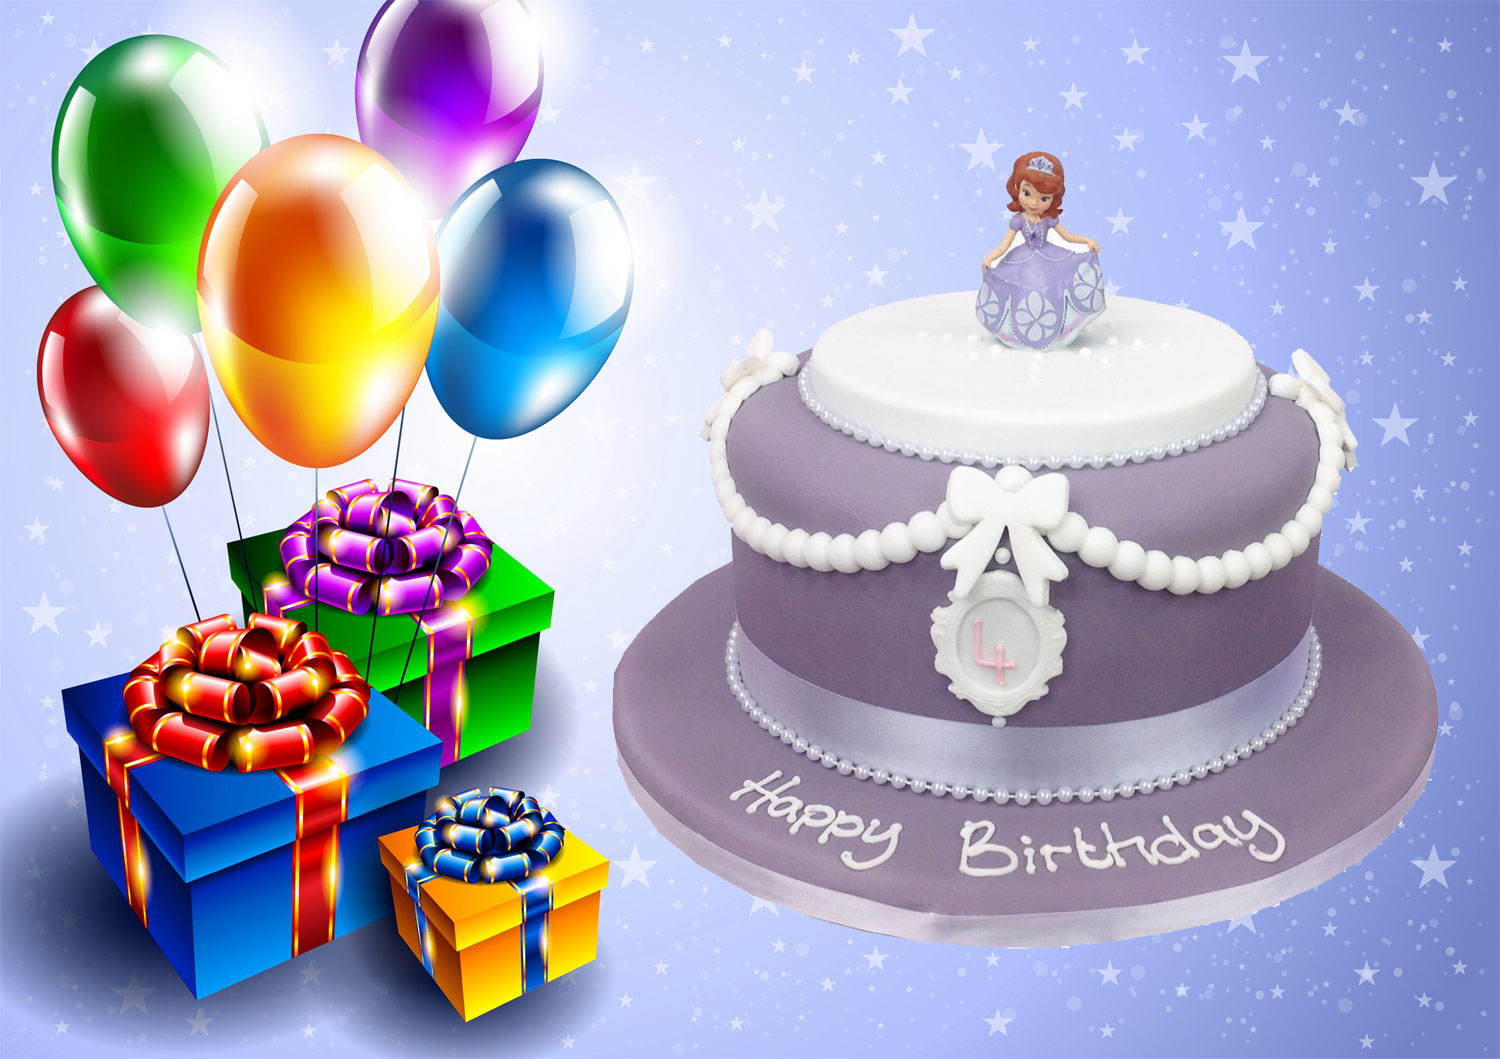 Best Birthday Cake Flavors 7 Special Cake Flavors To Celebrate Important Day